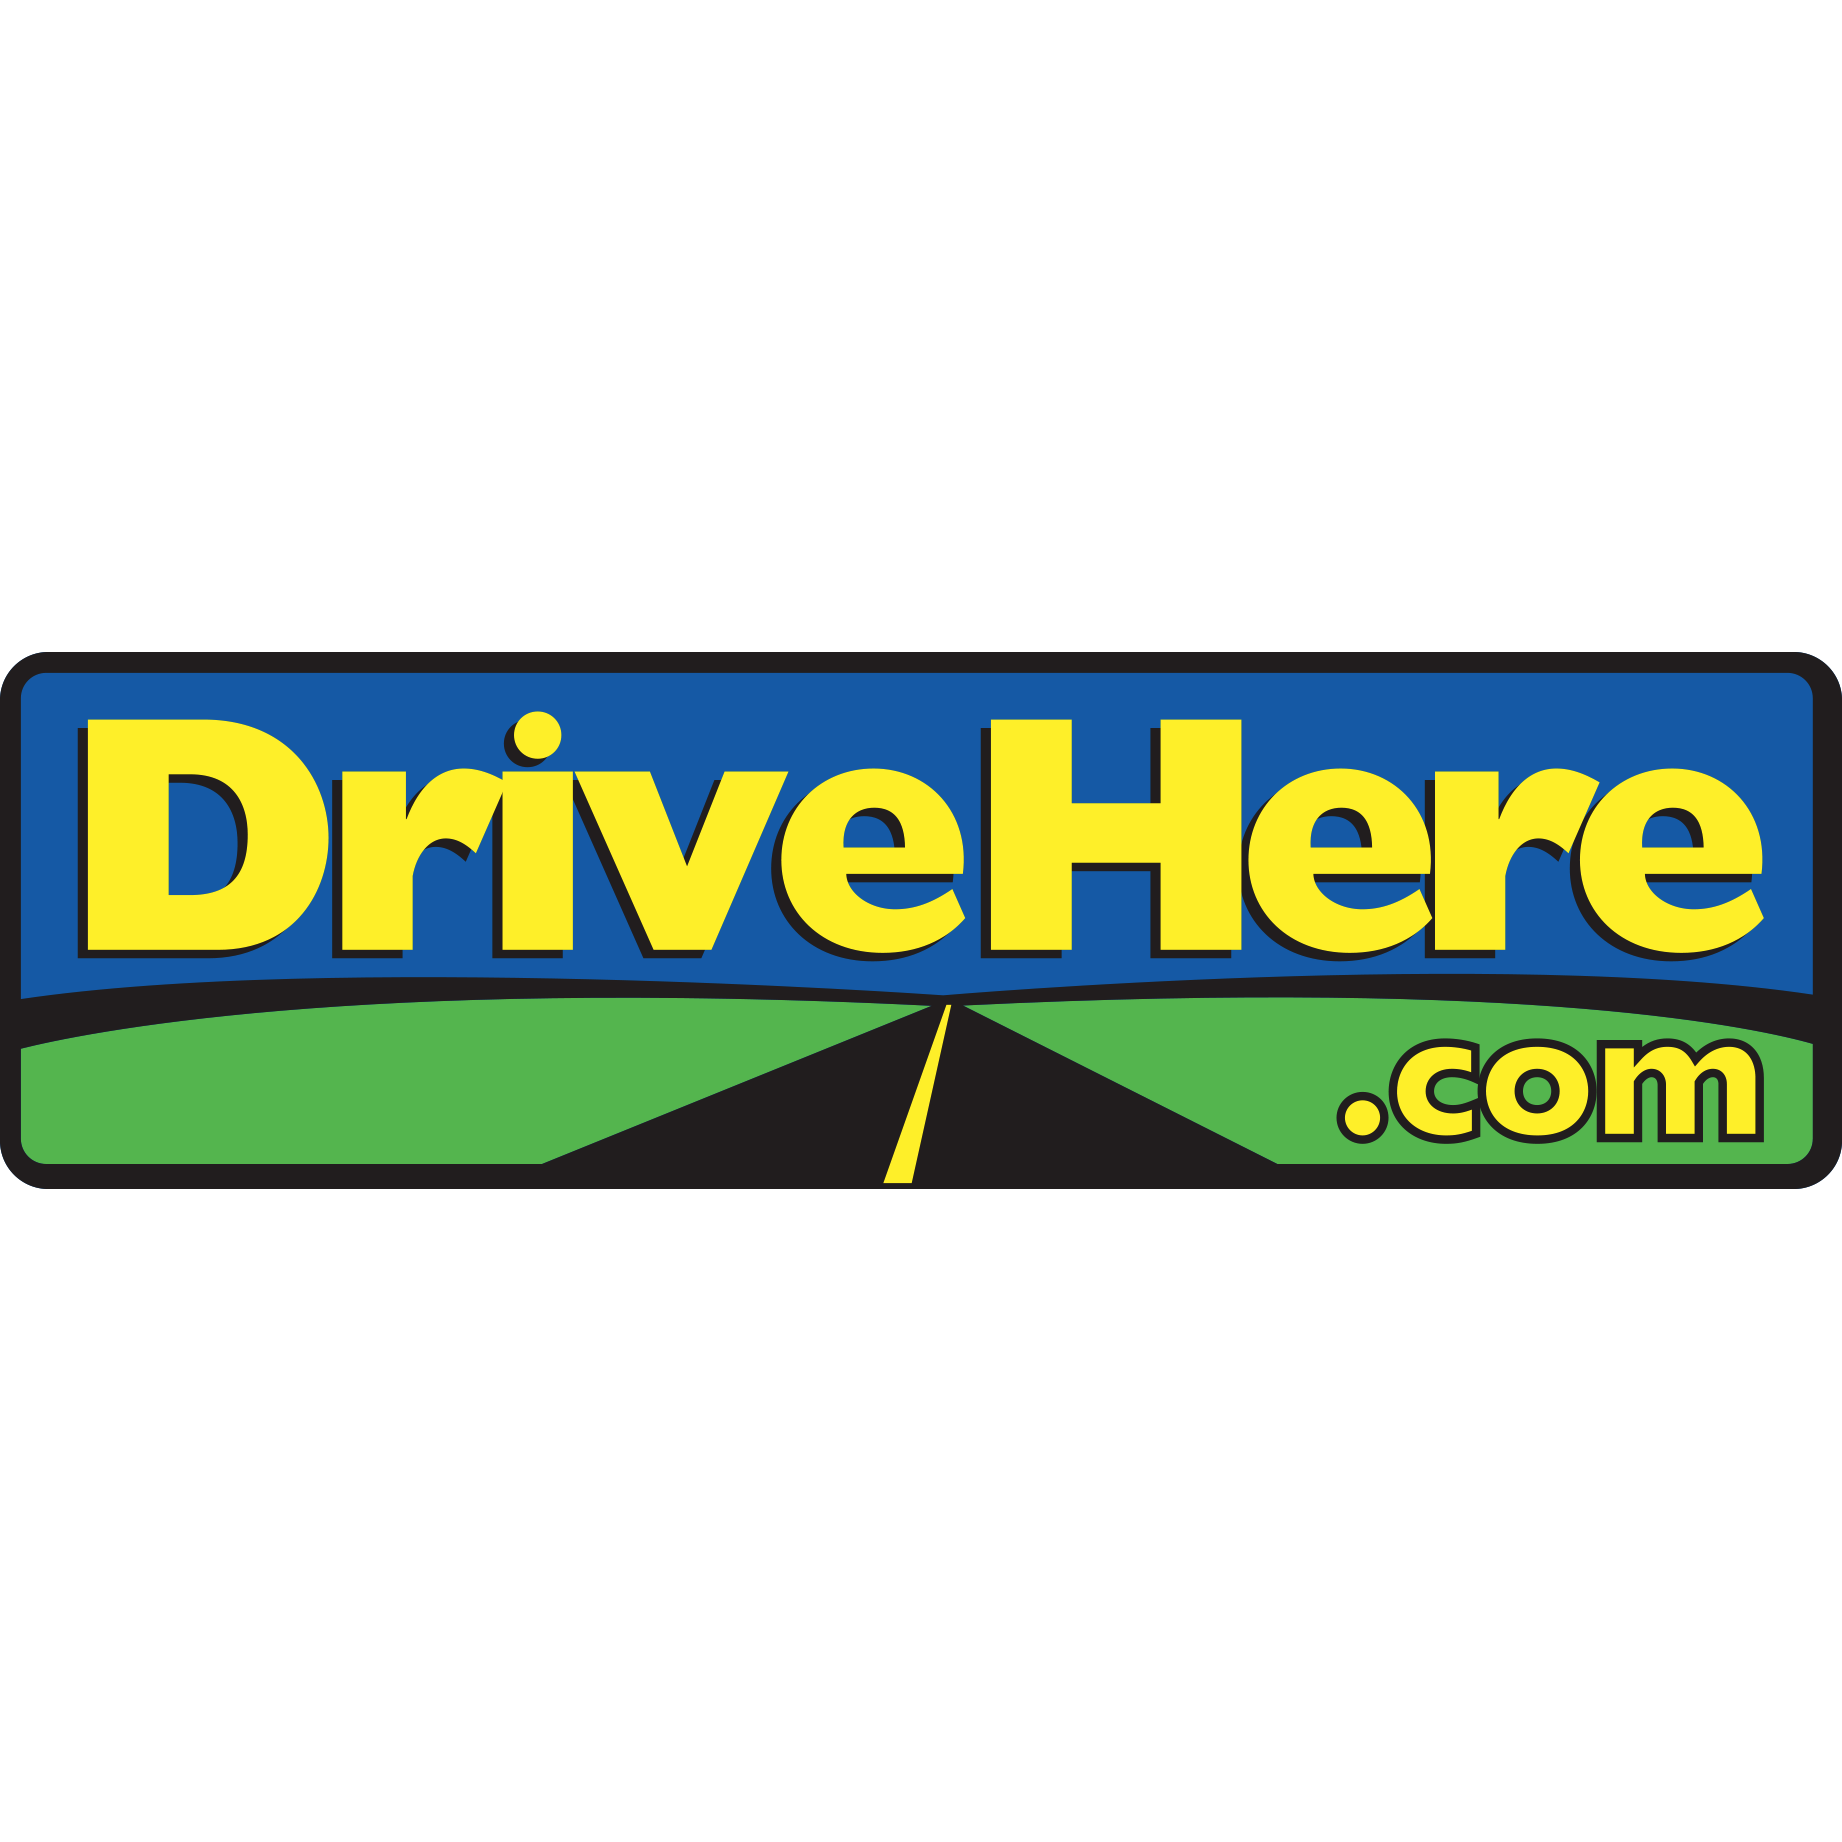 DriveHere.com, DriveHere, Drive Here -Philly